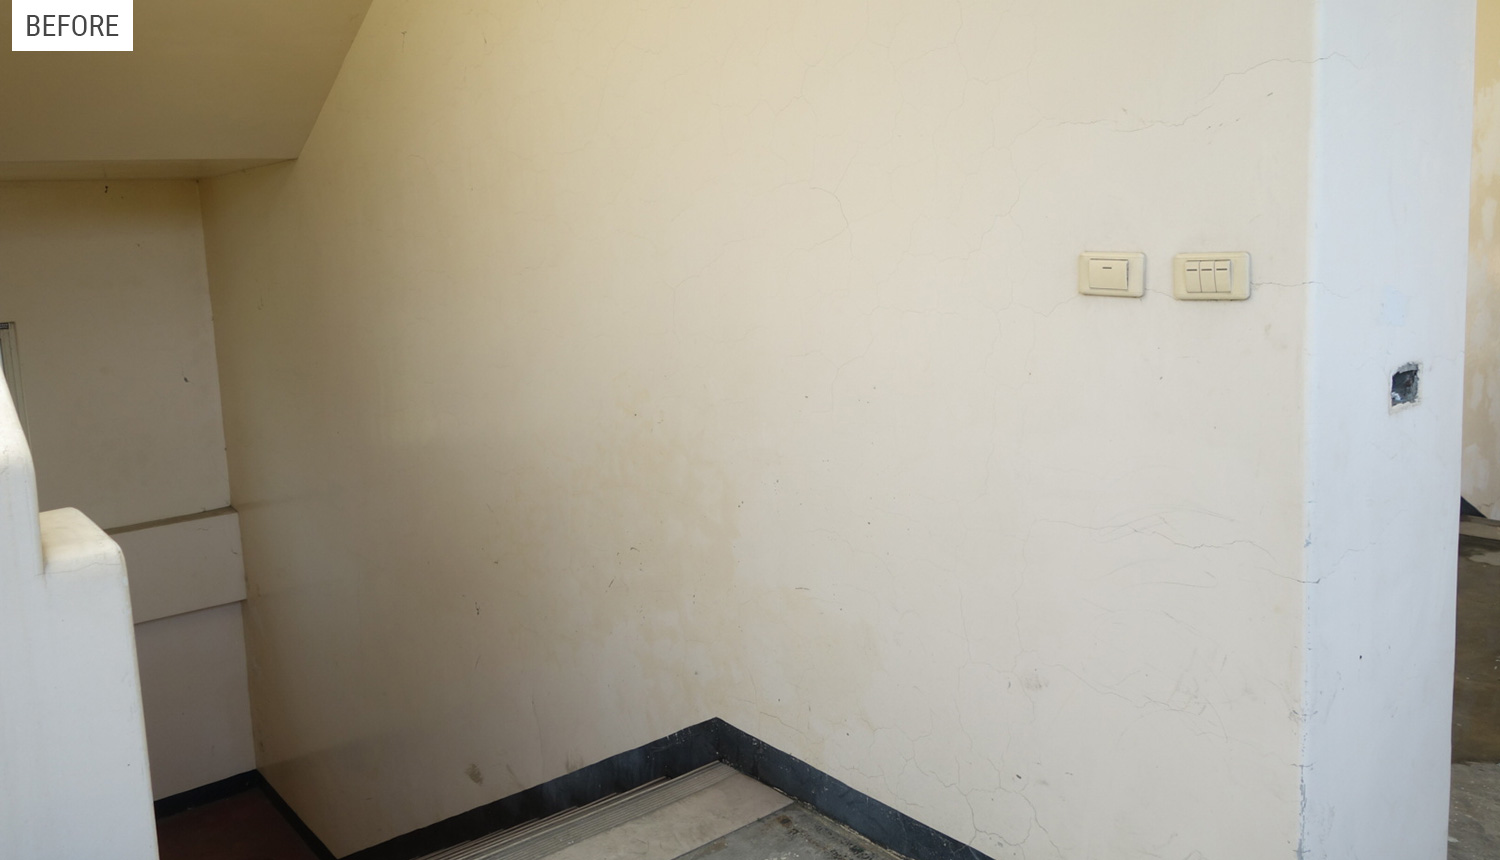 Second Floor Wall (before)